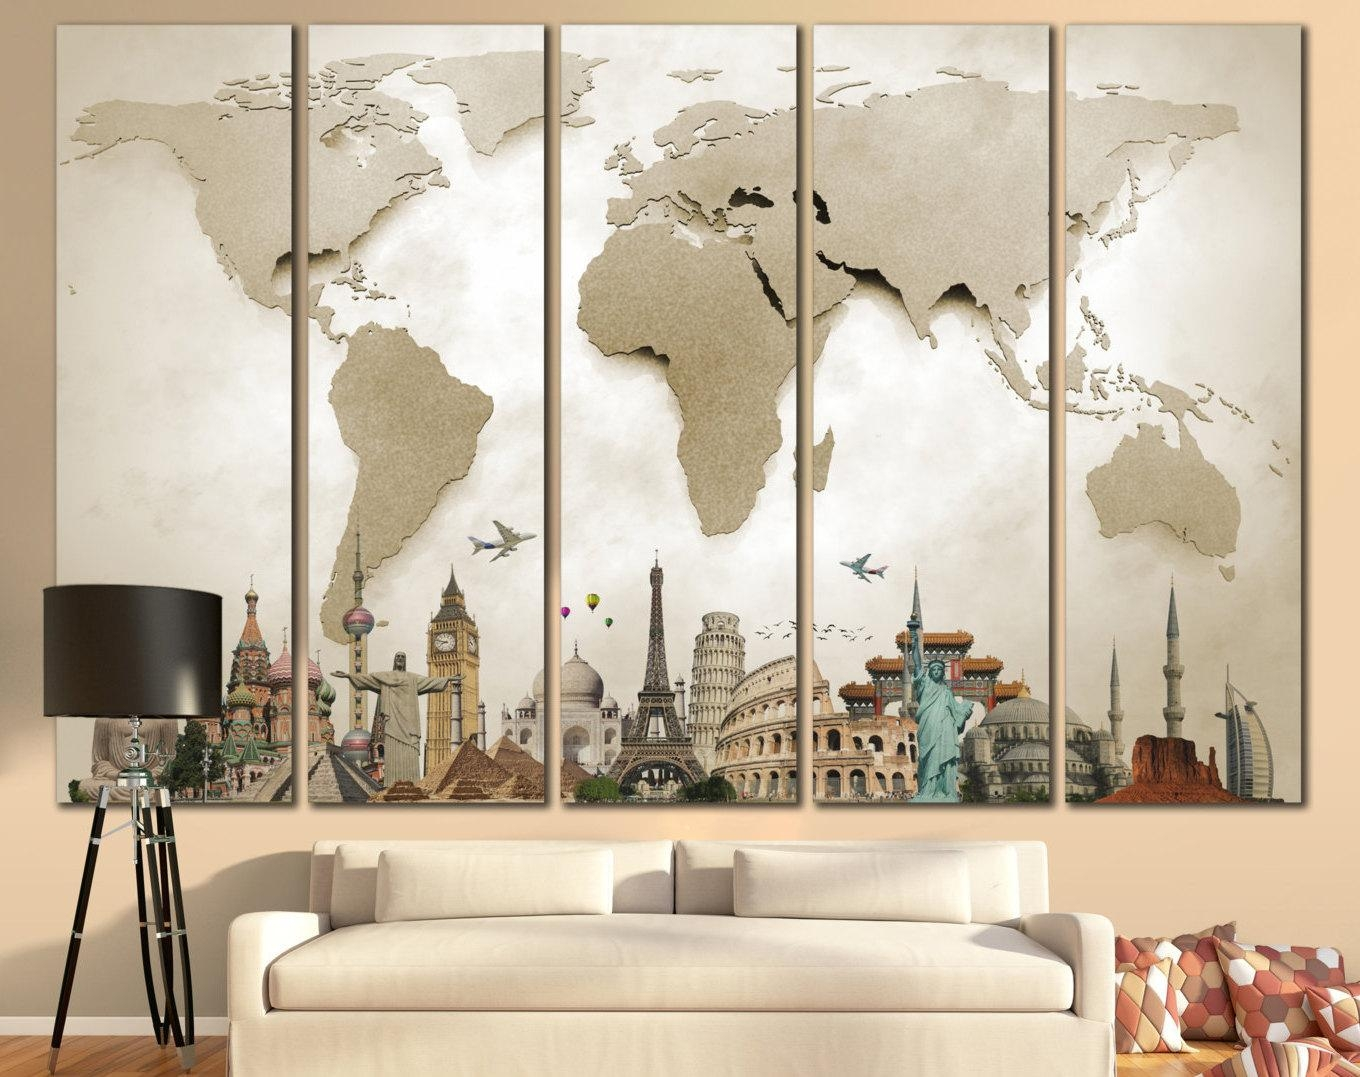 ▻ Amiable Figure Cheap Decorating Ideas For Living Room Walls Pertaining To Cheap Big Wall Art (Image 1 of 20)